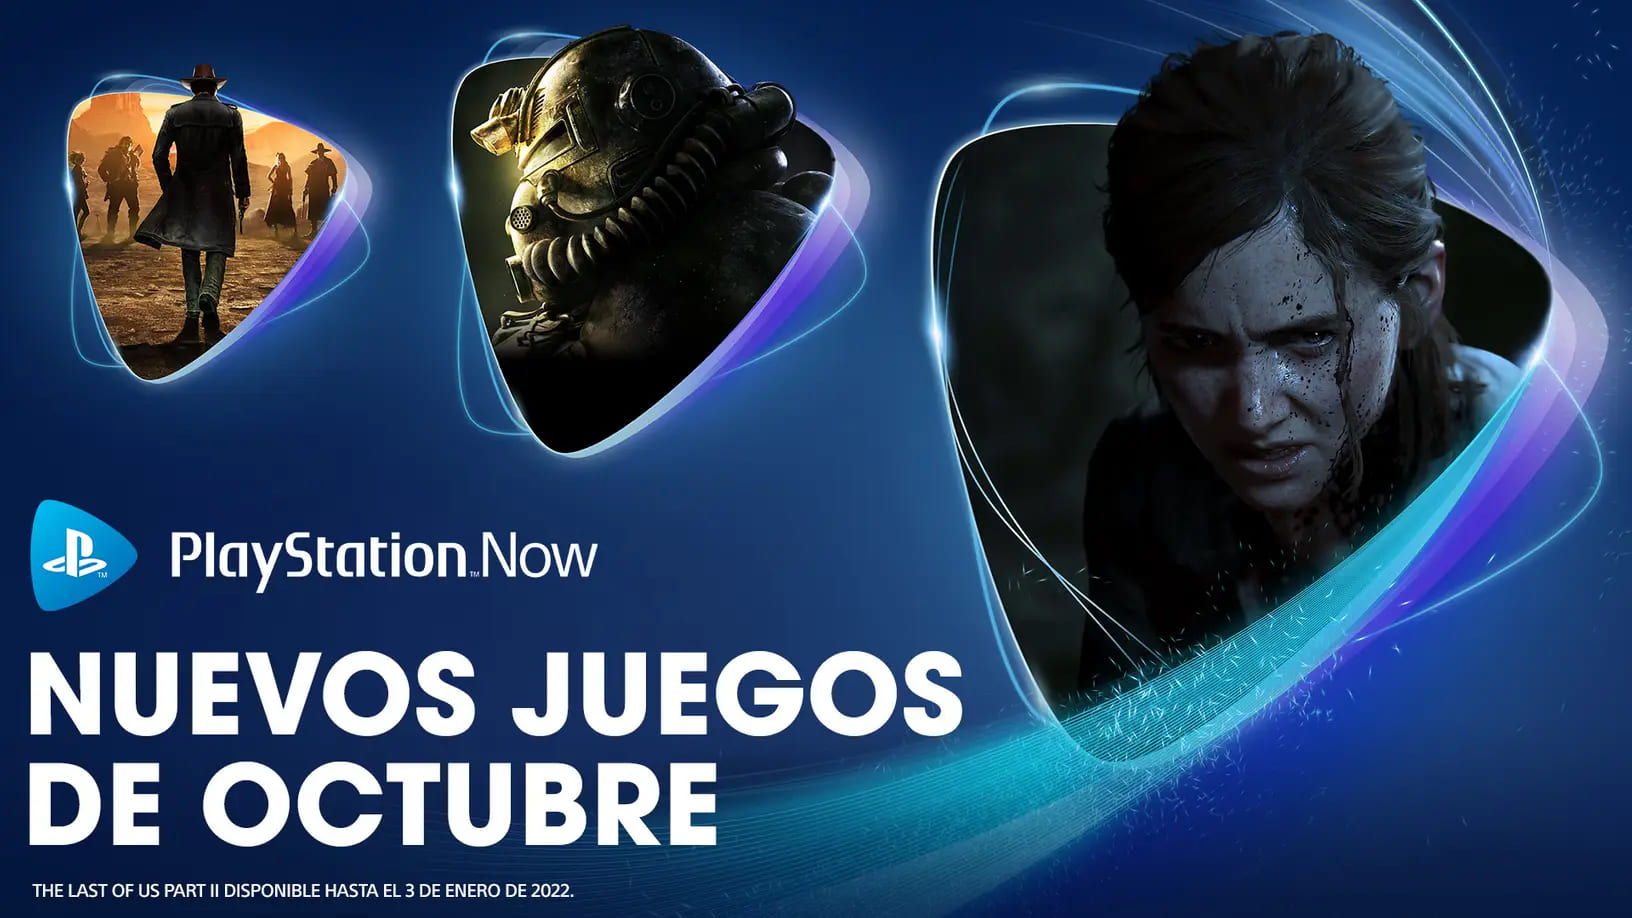 The Last of Us Parte II, Fallout 76 y Final Fantasy VIII Remastered llegan a PlayStation Now